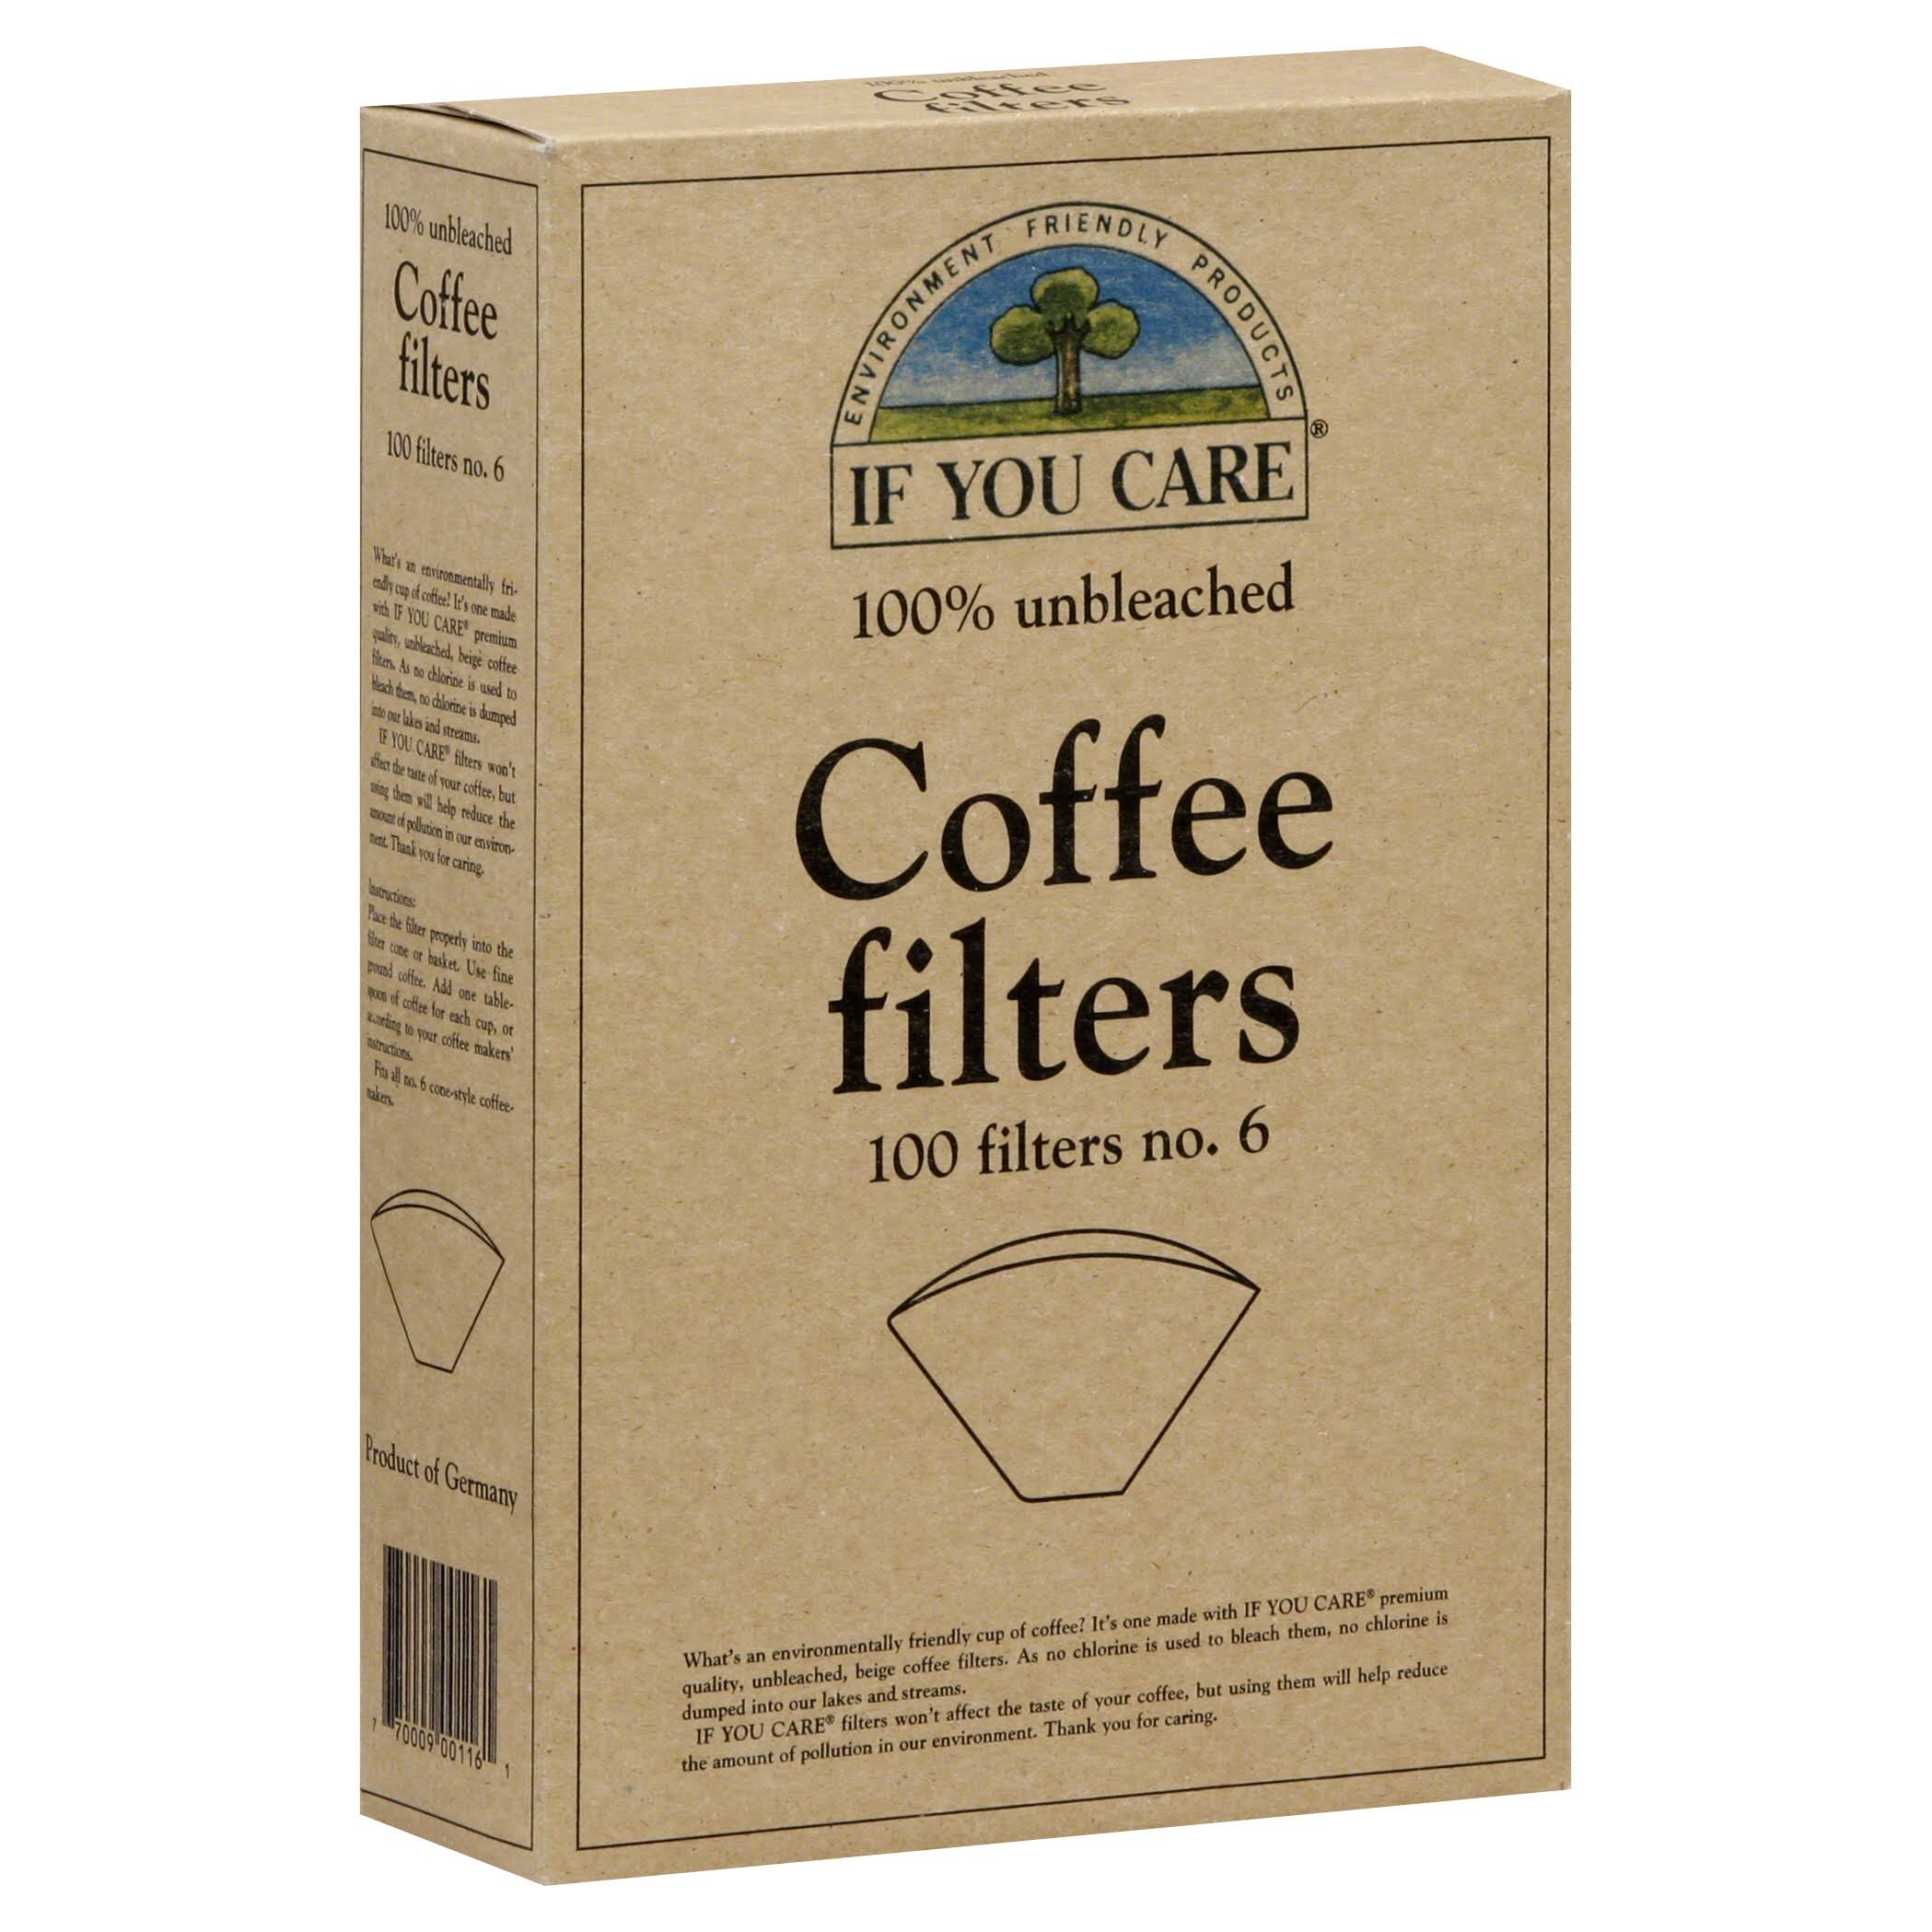 If You Care Coffee Filters - 100 Filter, Number 6